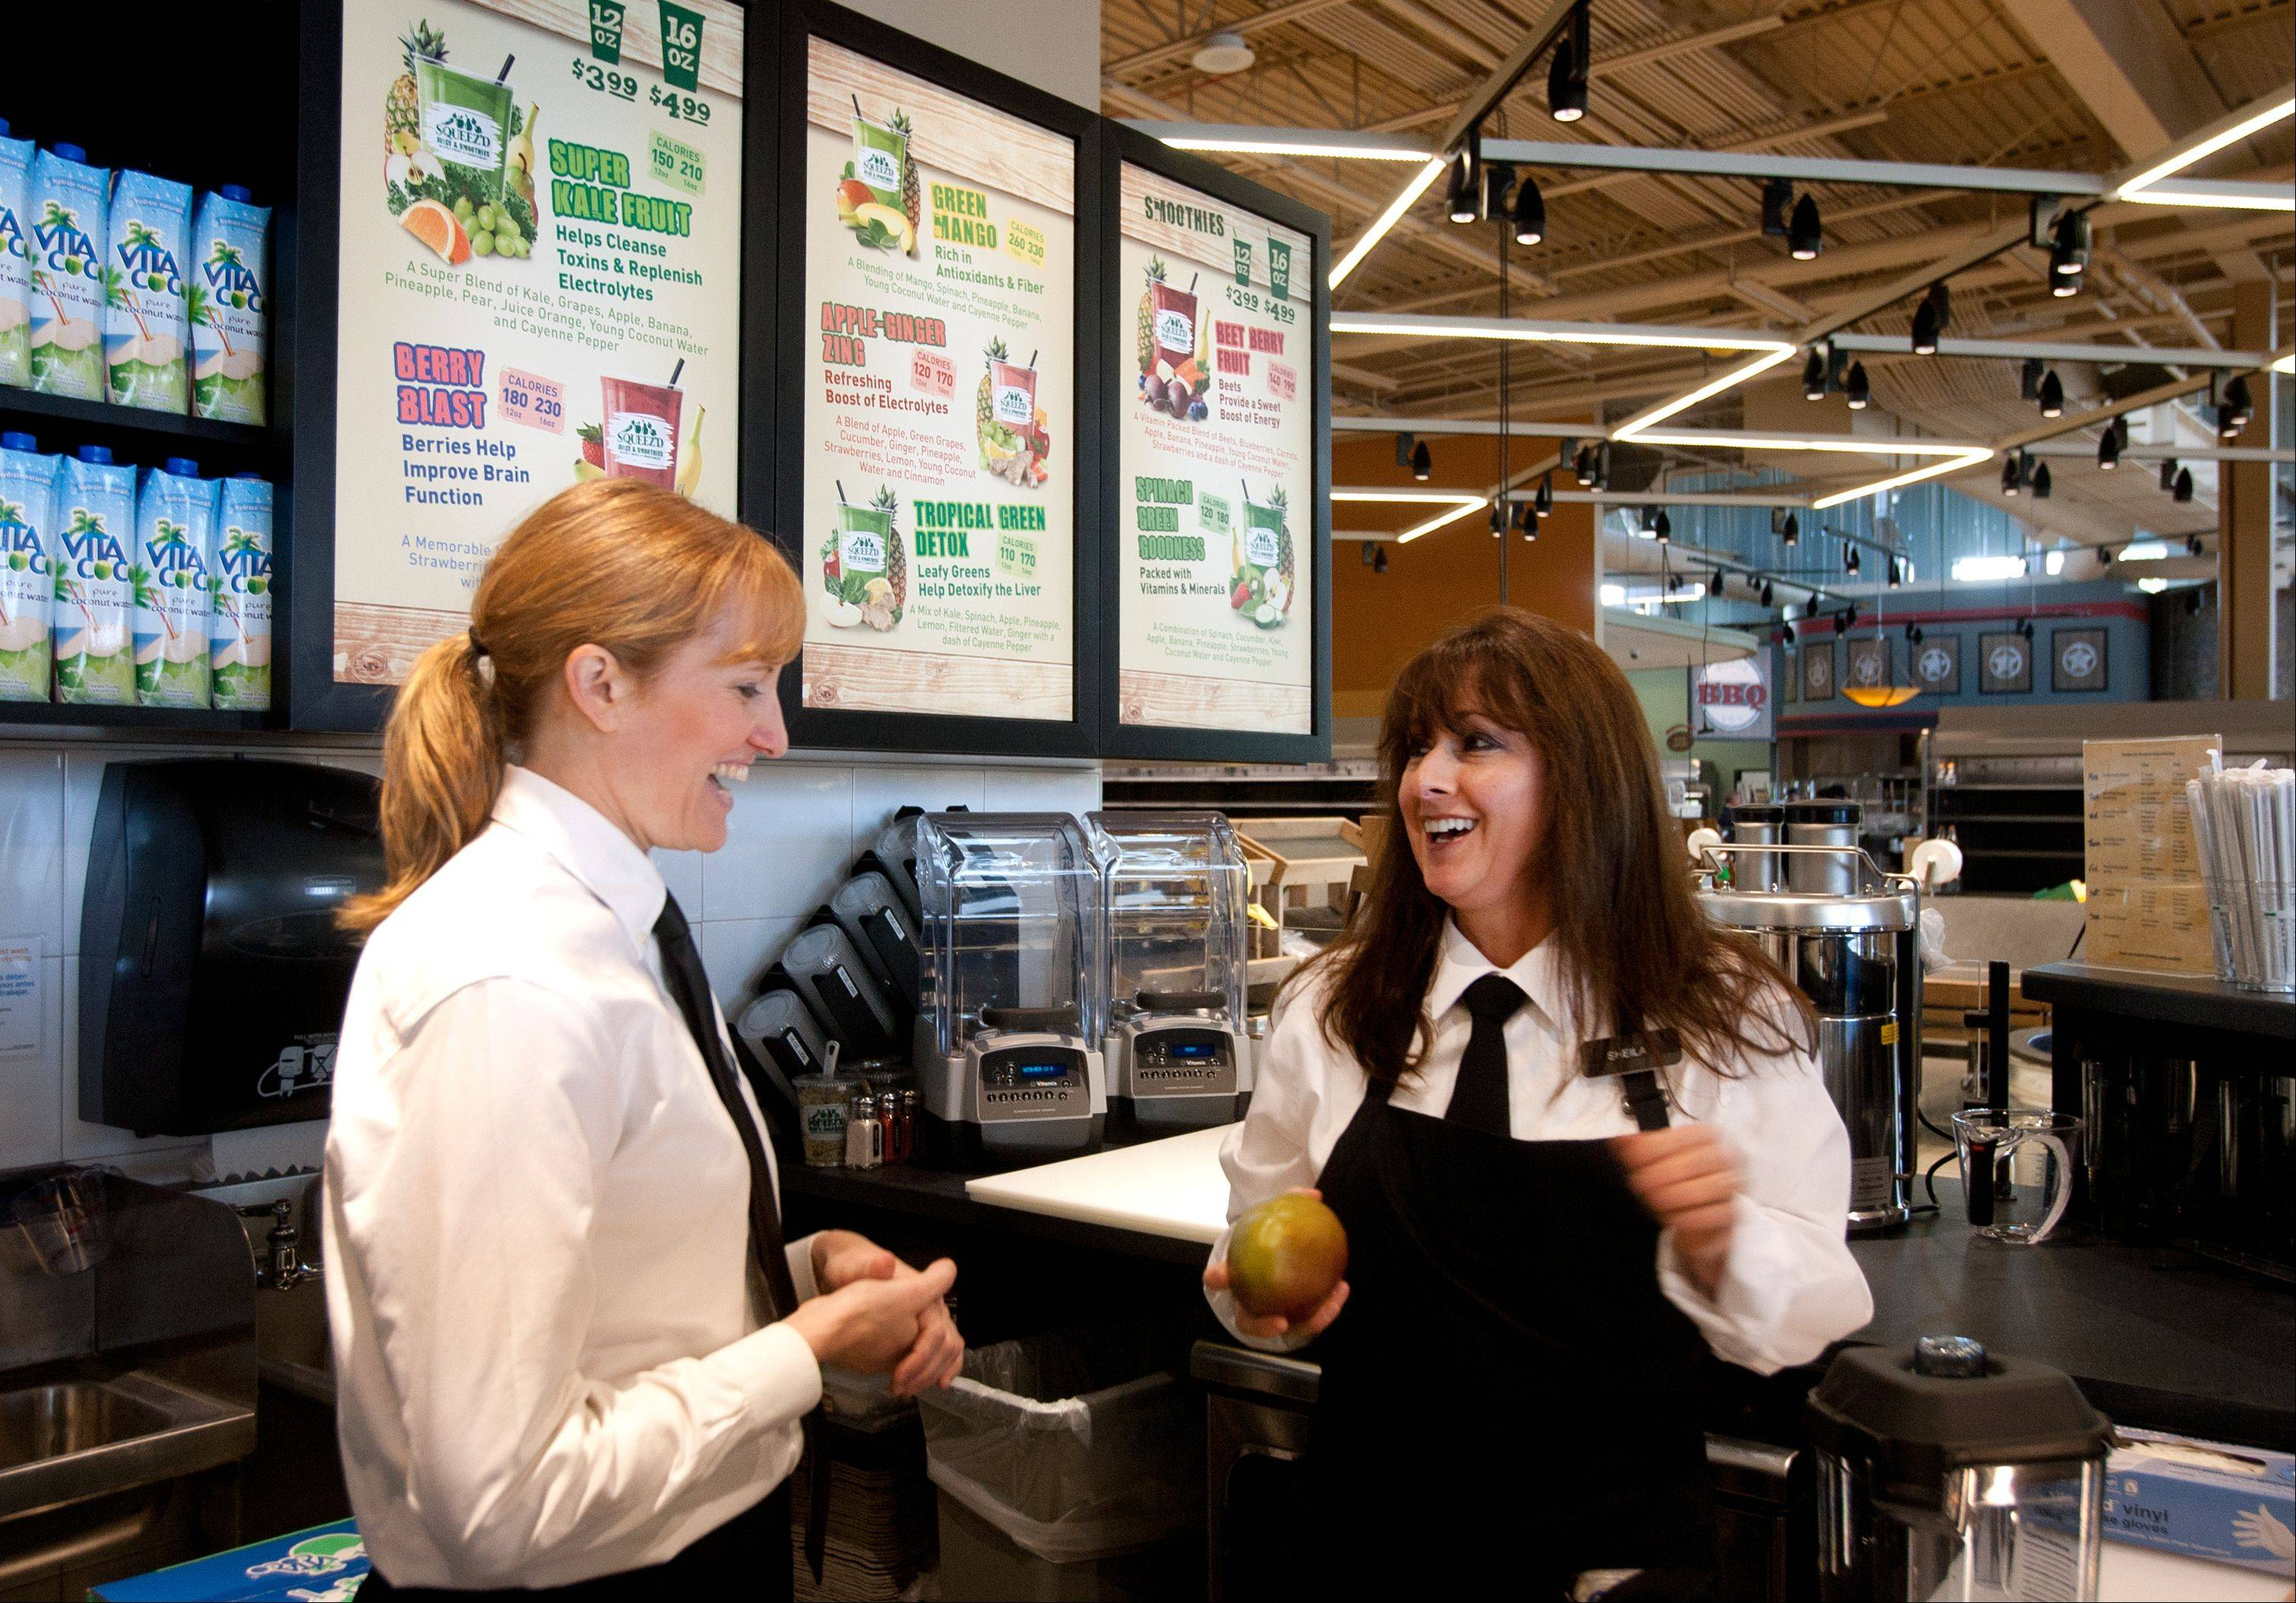 Amelia Hodak, left, and Sheila Buck, discuss smoothie recipes at the smoothie bar located just inside Mariano's entrance.